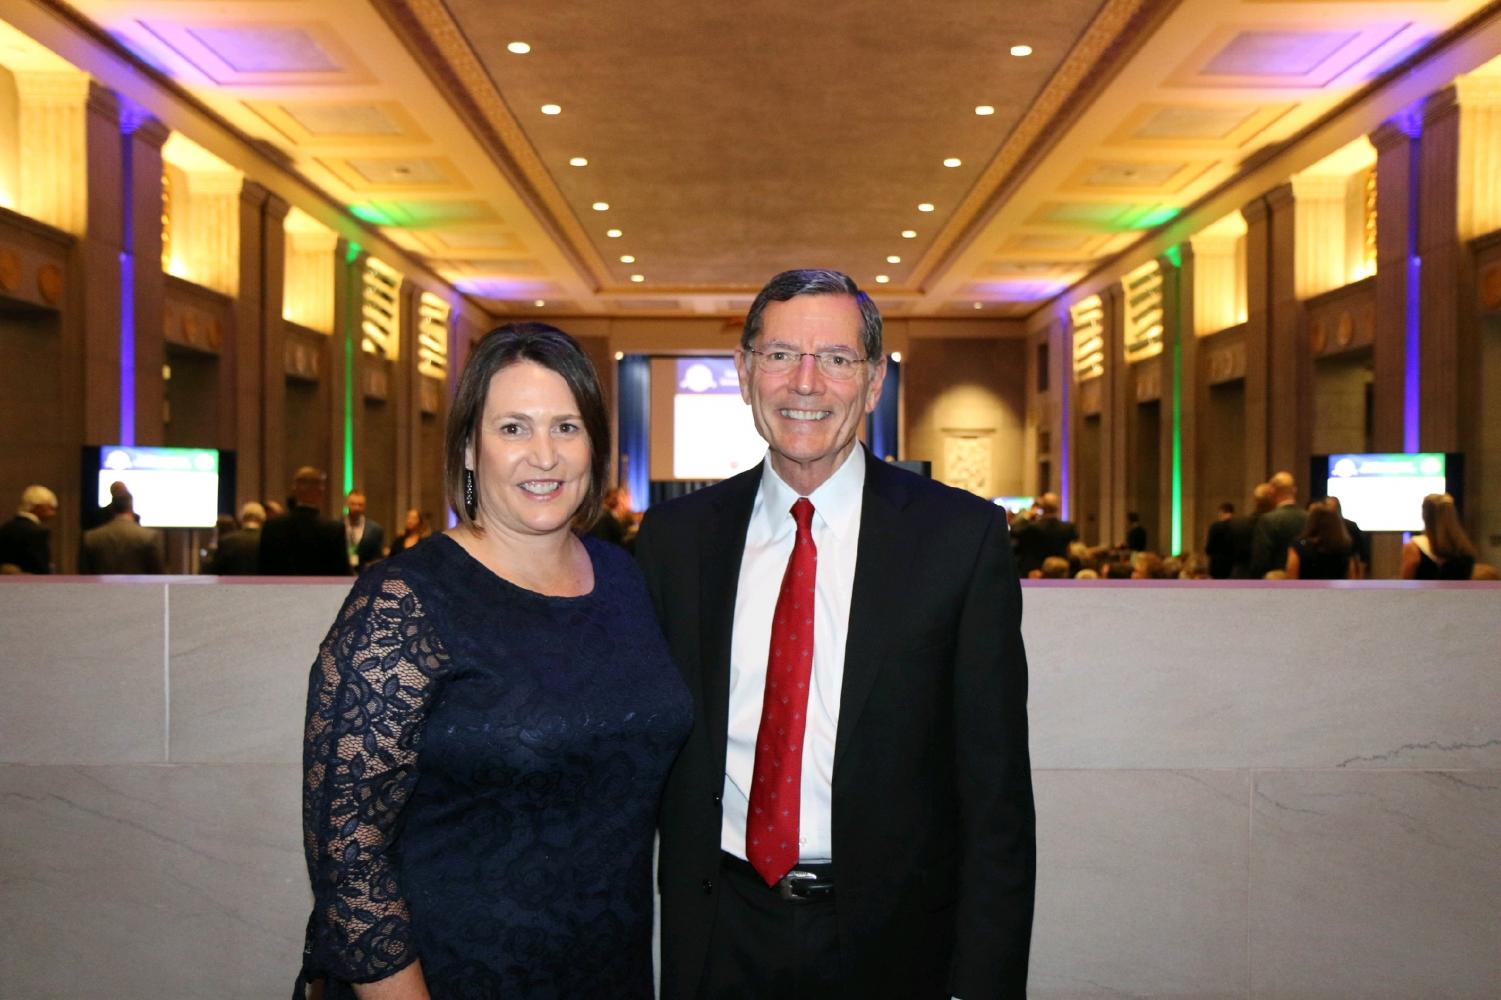 Mrs. Necole Hanks poses with Senator John Barrasso after winning the Presidential Awards for Excellence in Mathematics and Science Teaching.